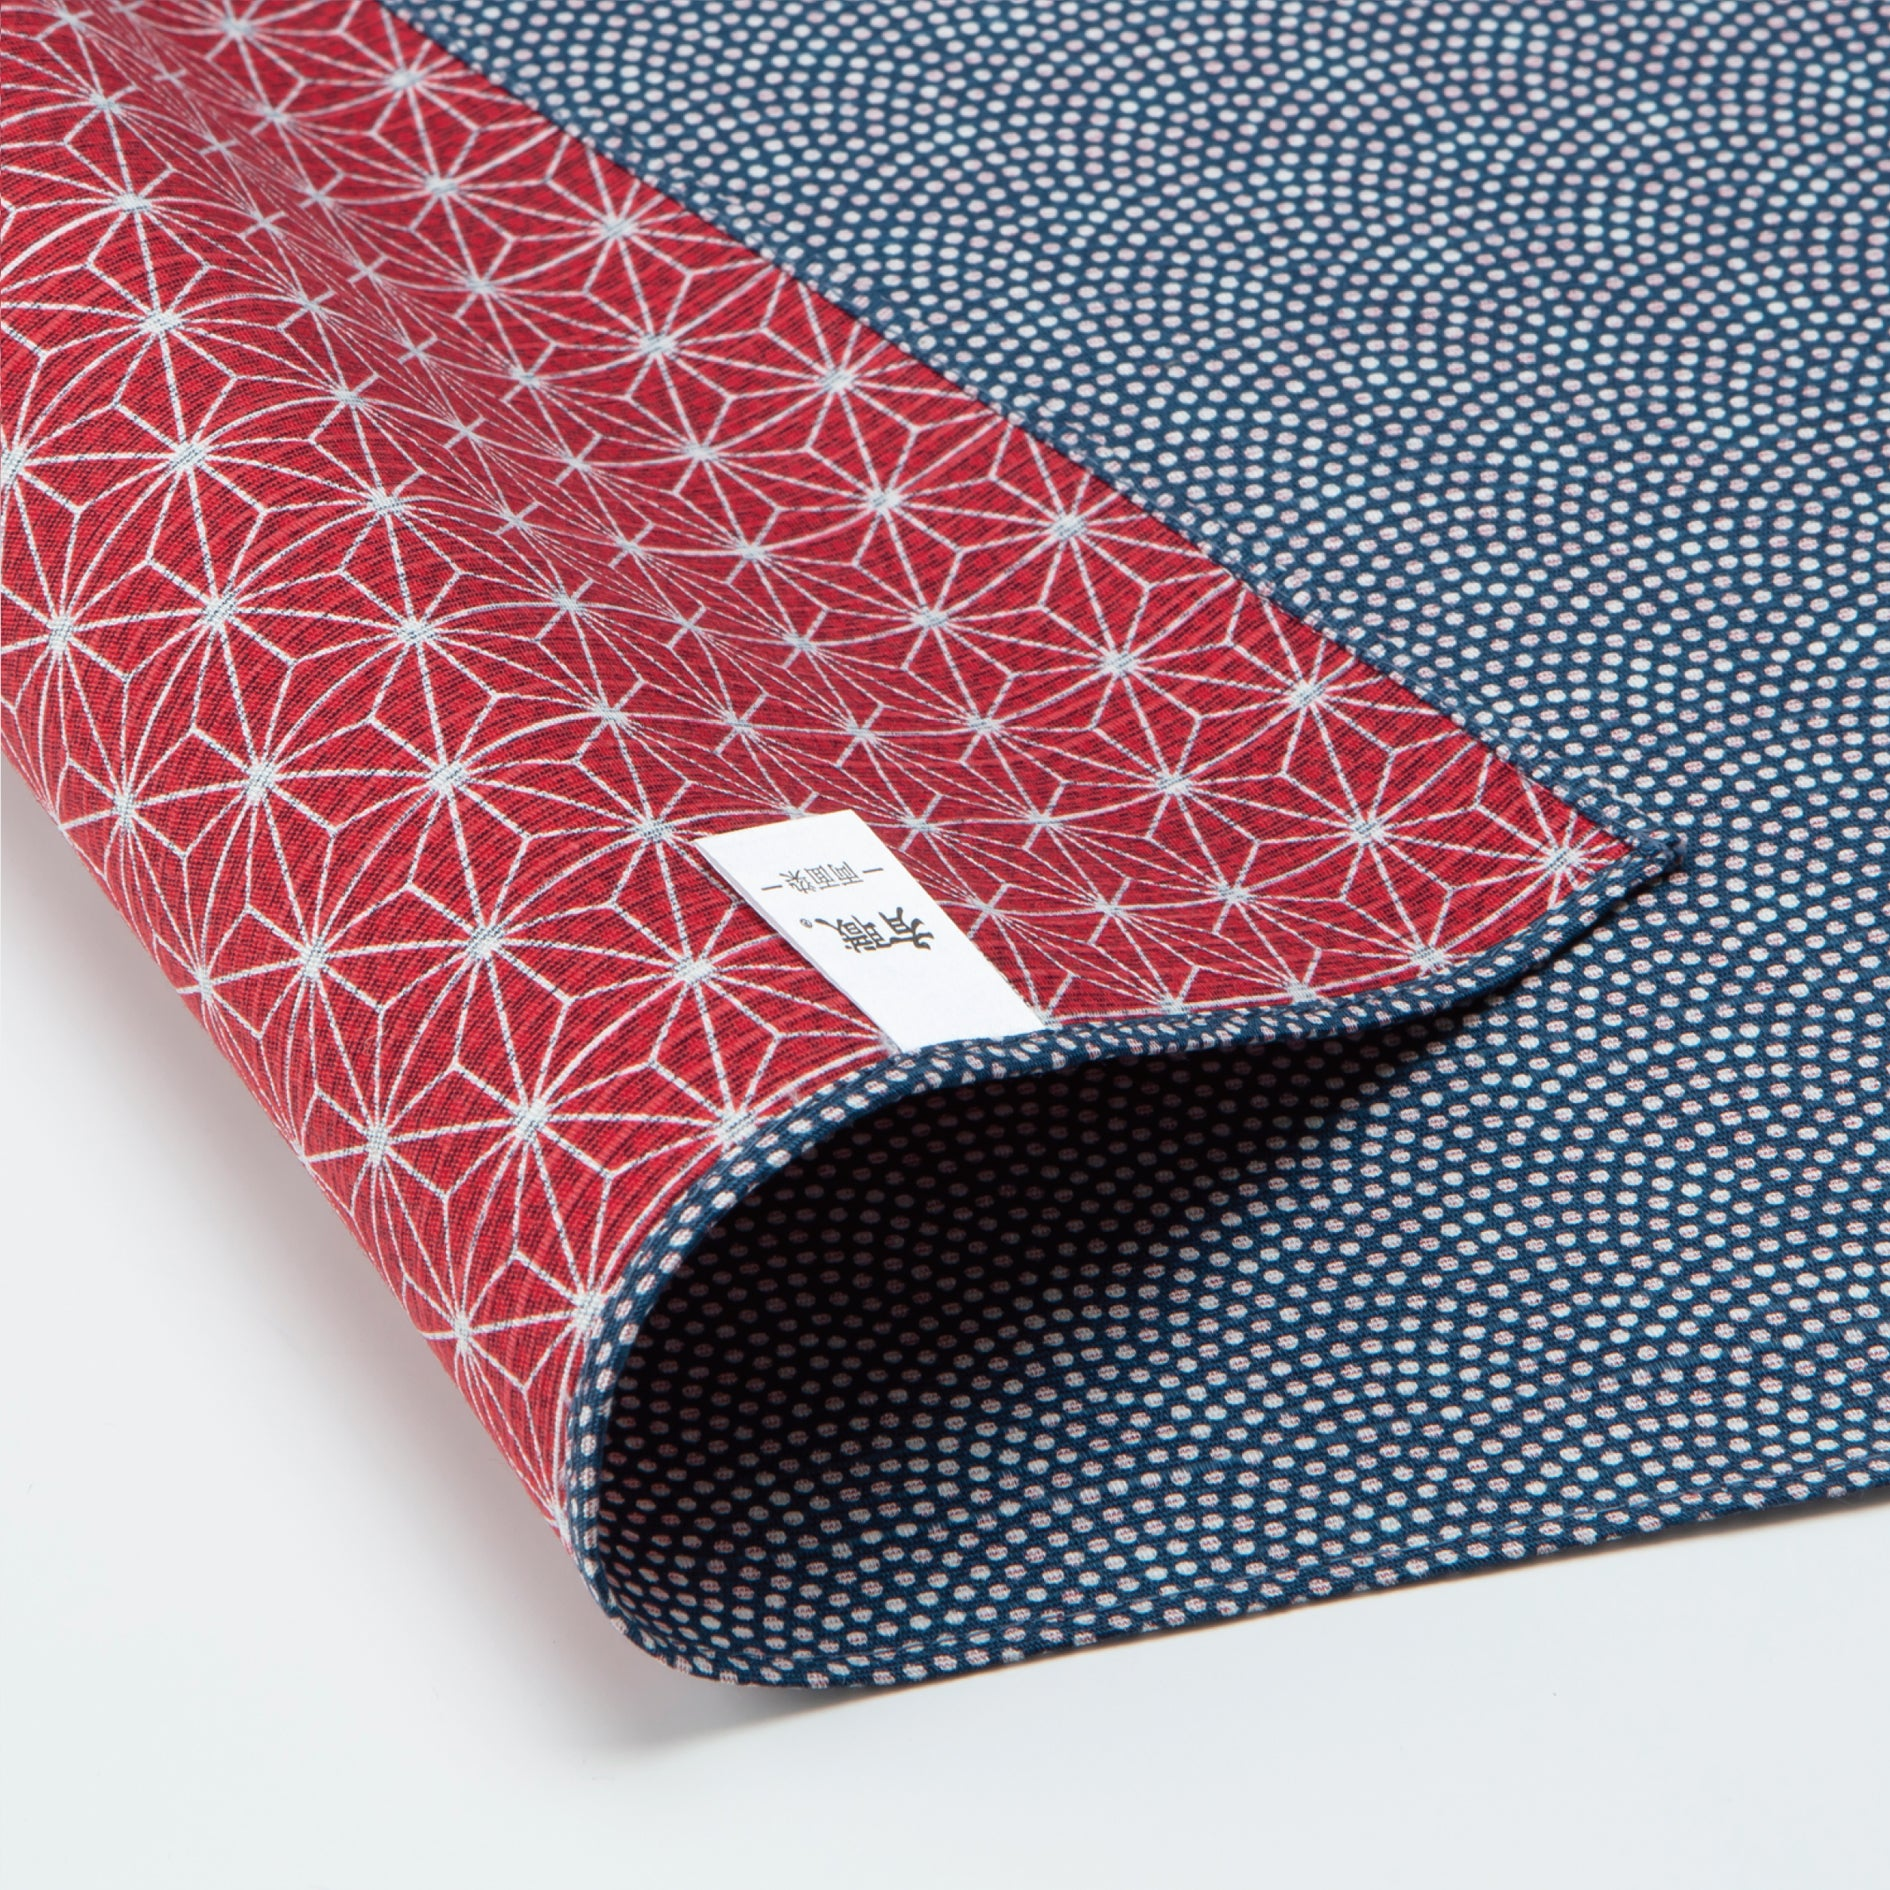 Double Sided Furoshiki Wrapping Cloth | Asanoha Nami Navy & Red